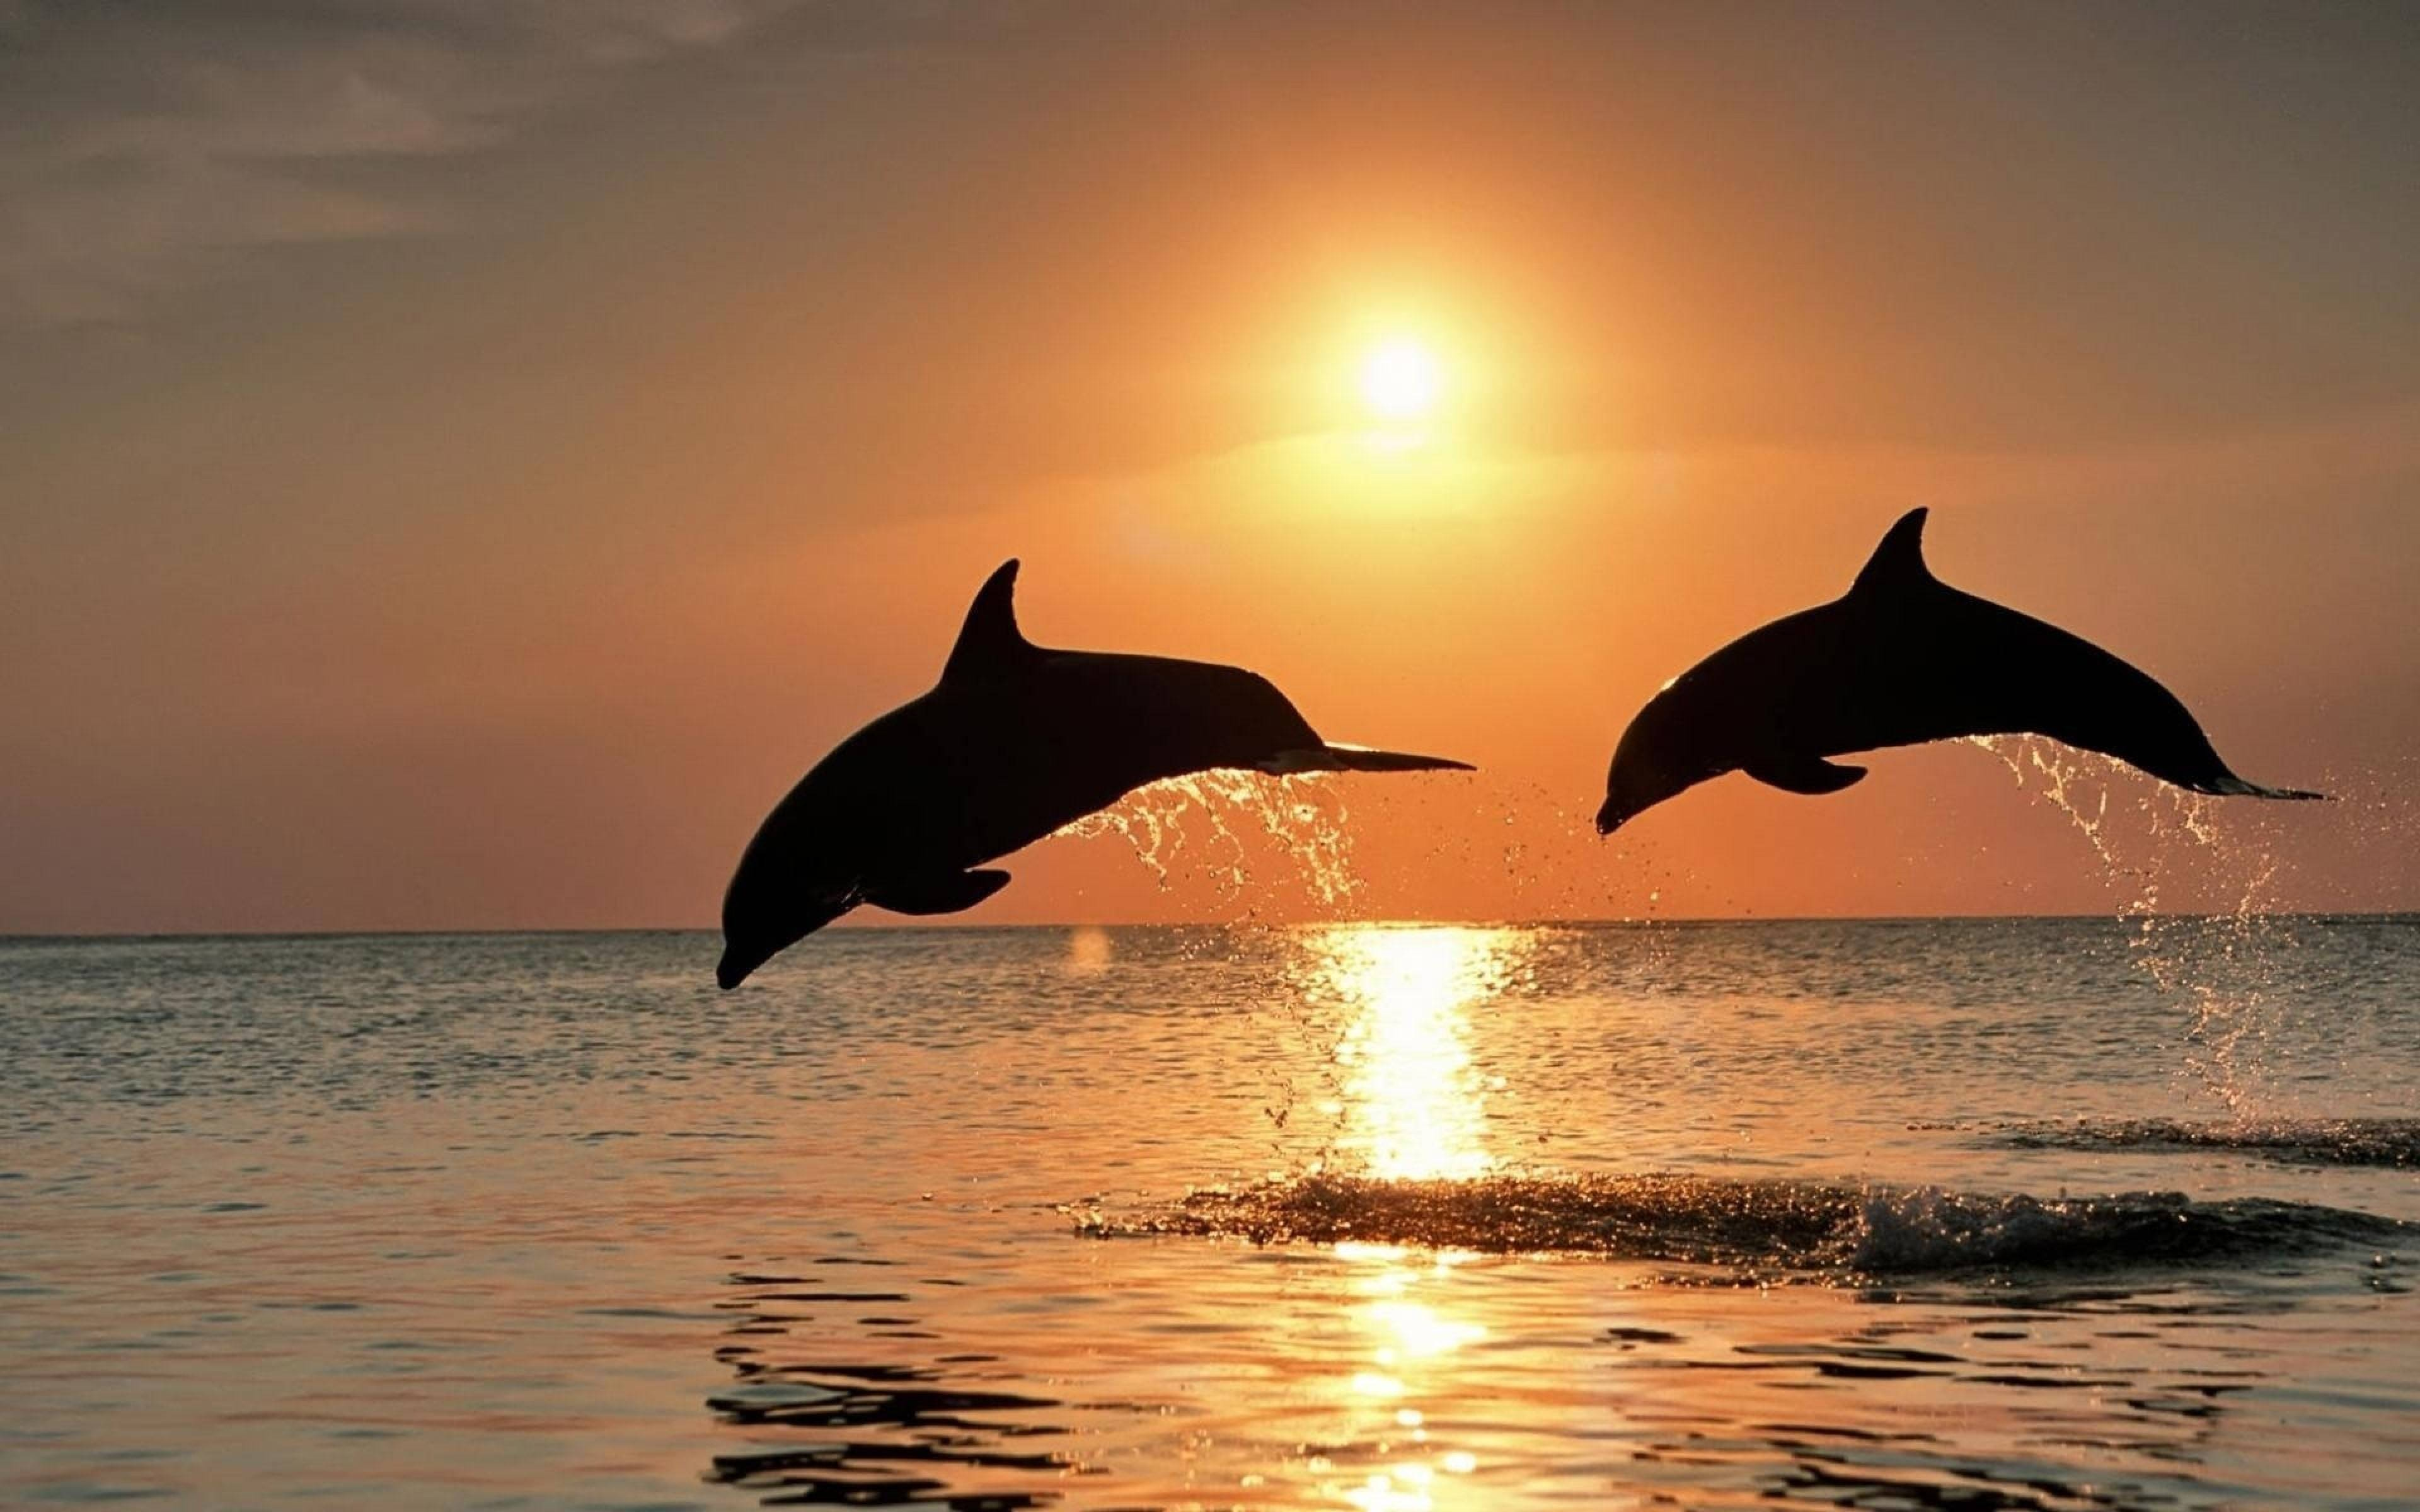 Bottlenose dolphins Wallpapers Images Photos Pictures Backgrounds 3840x2400